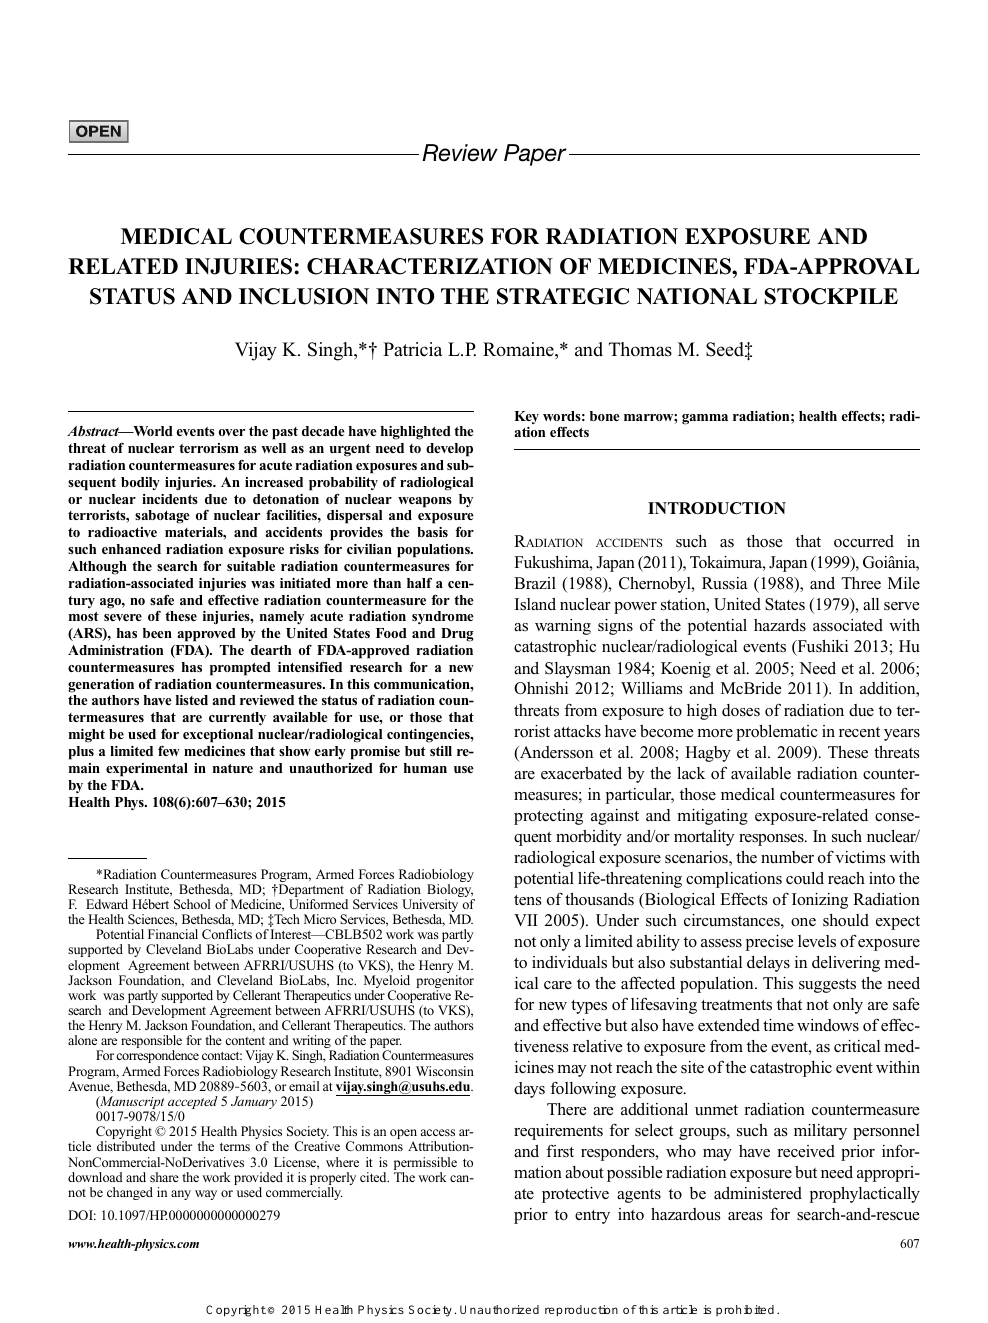 Medical Countermeasures for Radiation Exposure and Related